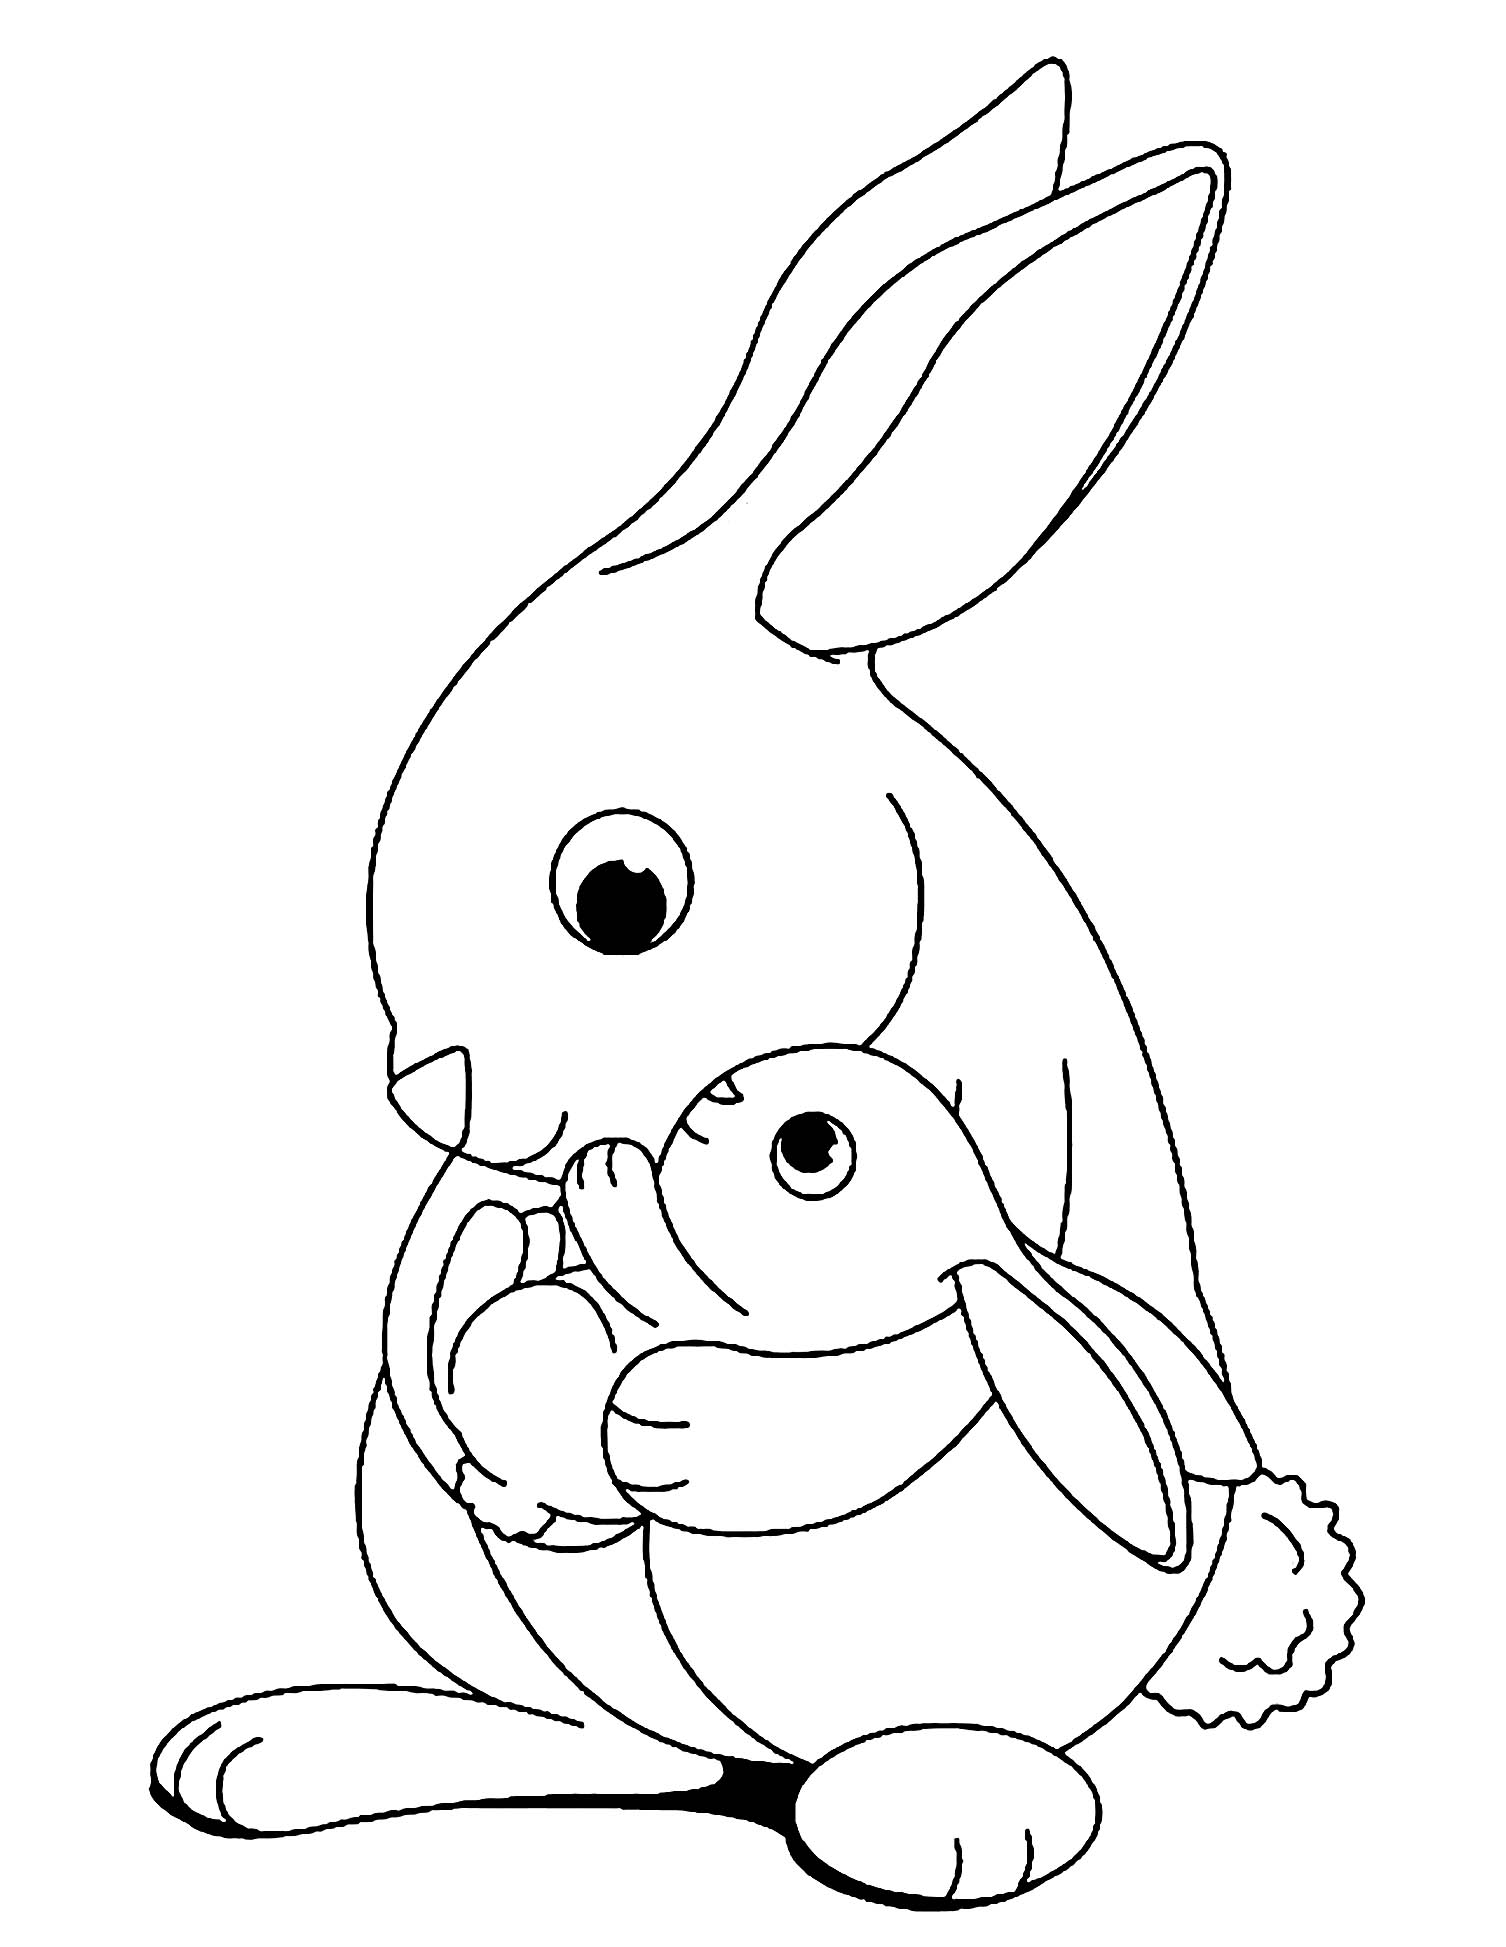 coloring pages of bunny rabbits 60 rabbit shape templates and crafts colouring pages coloring pages bunny rabbits of